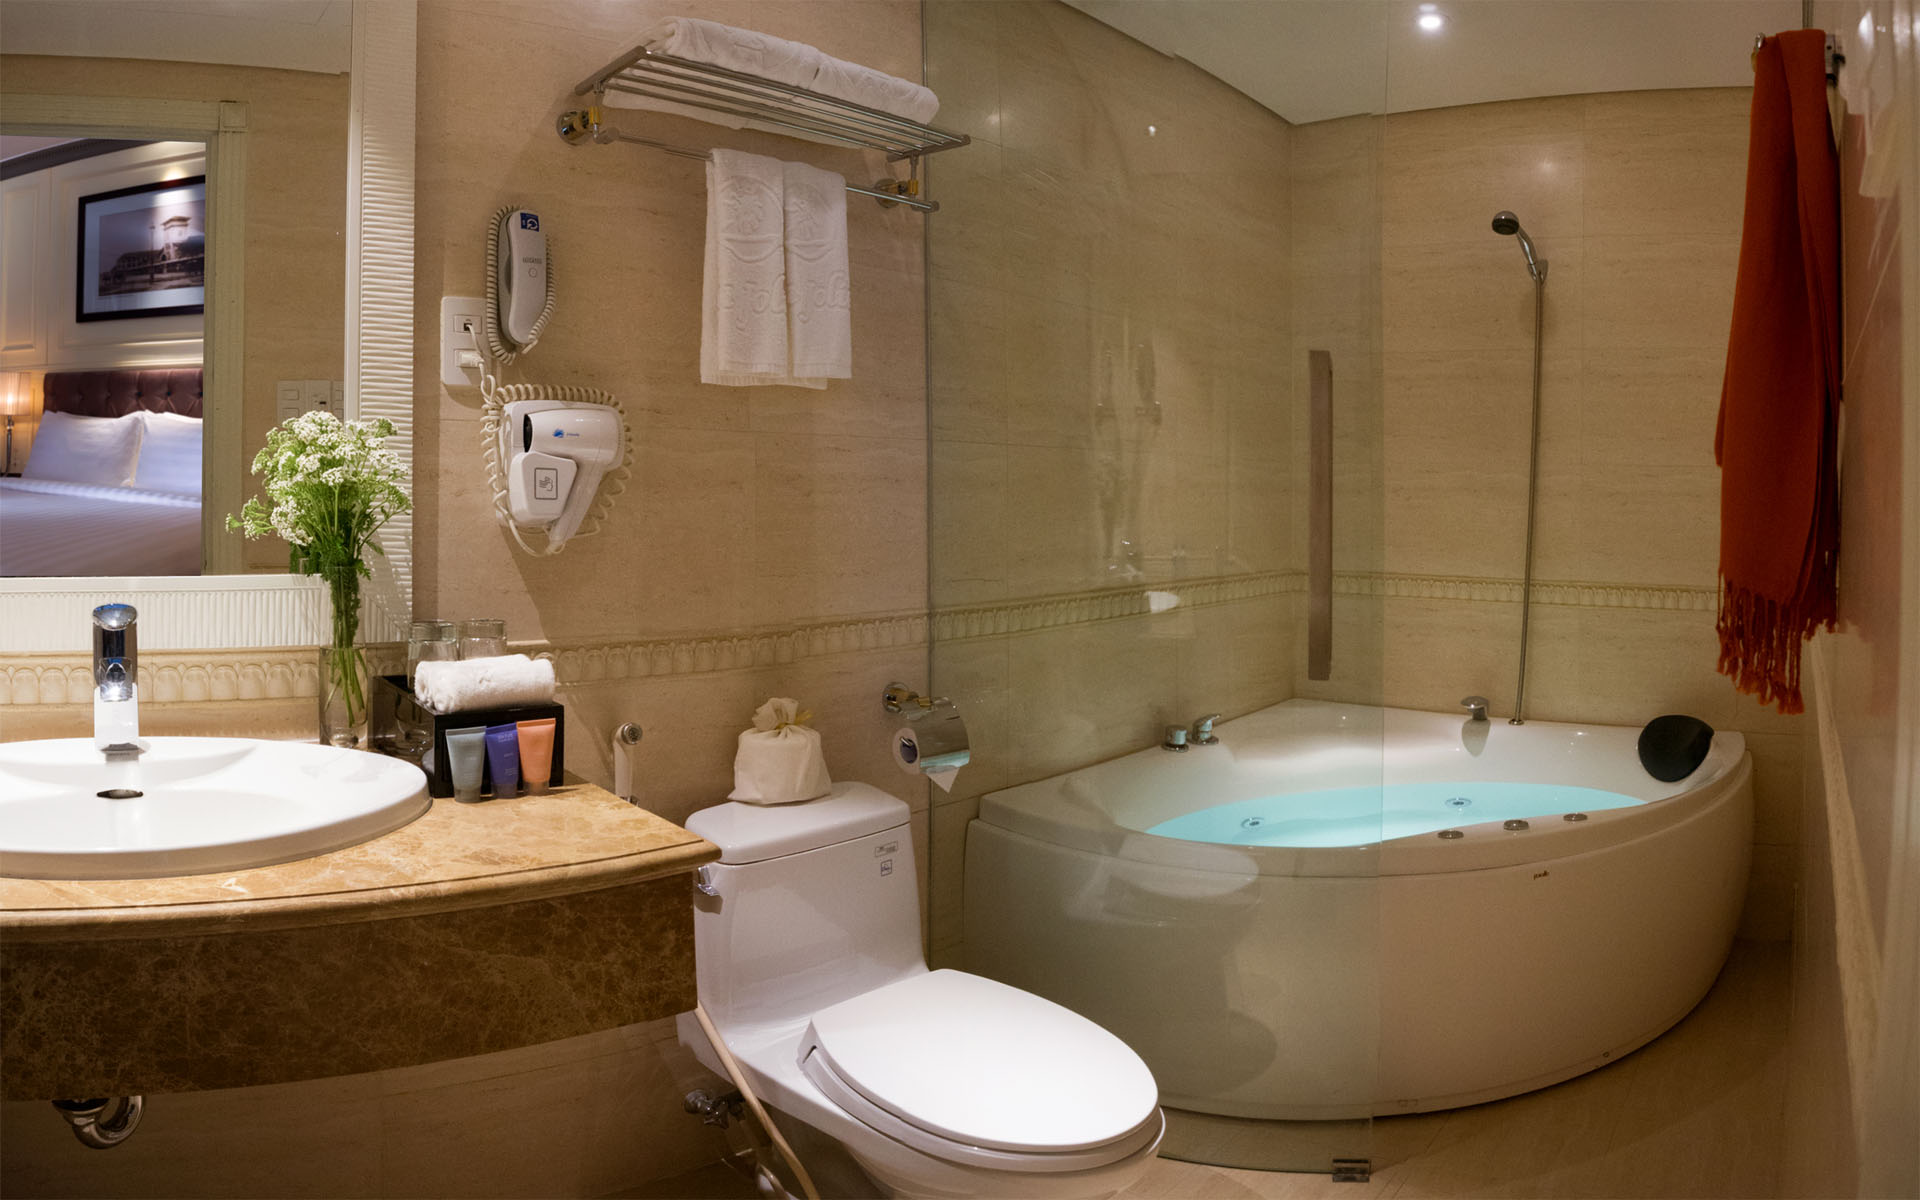 JUNIOR SUITE with Jacuzzi in bathroom